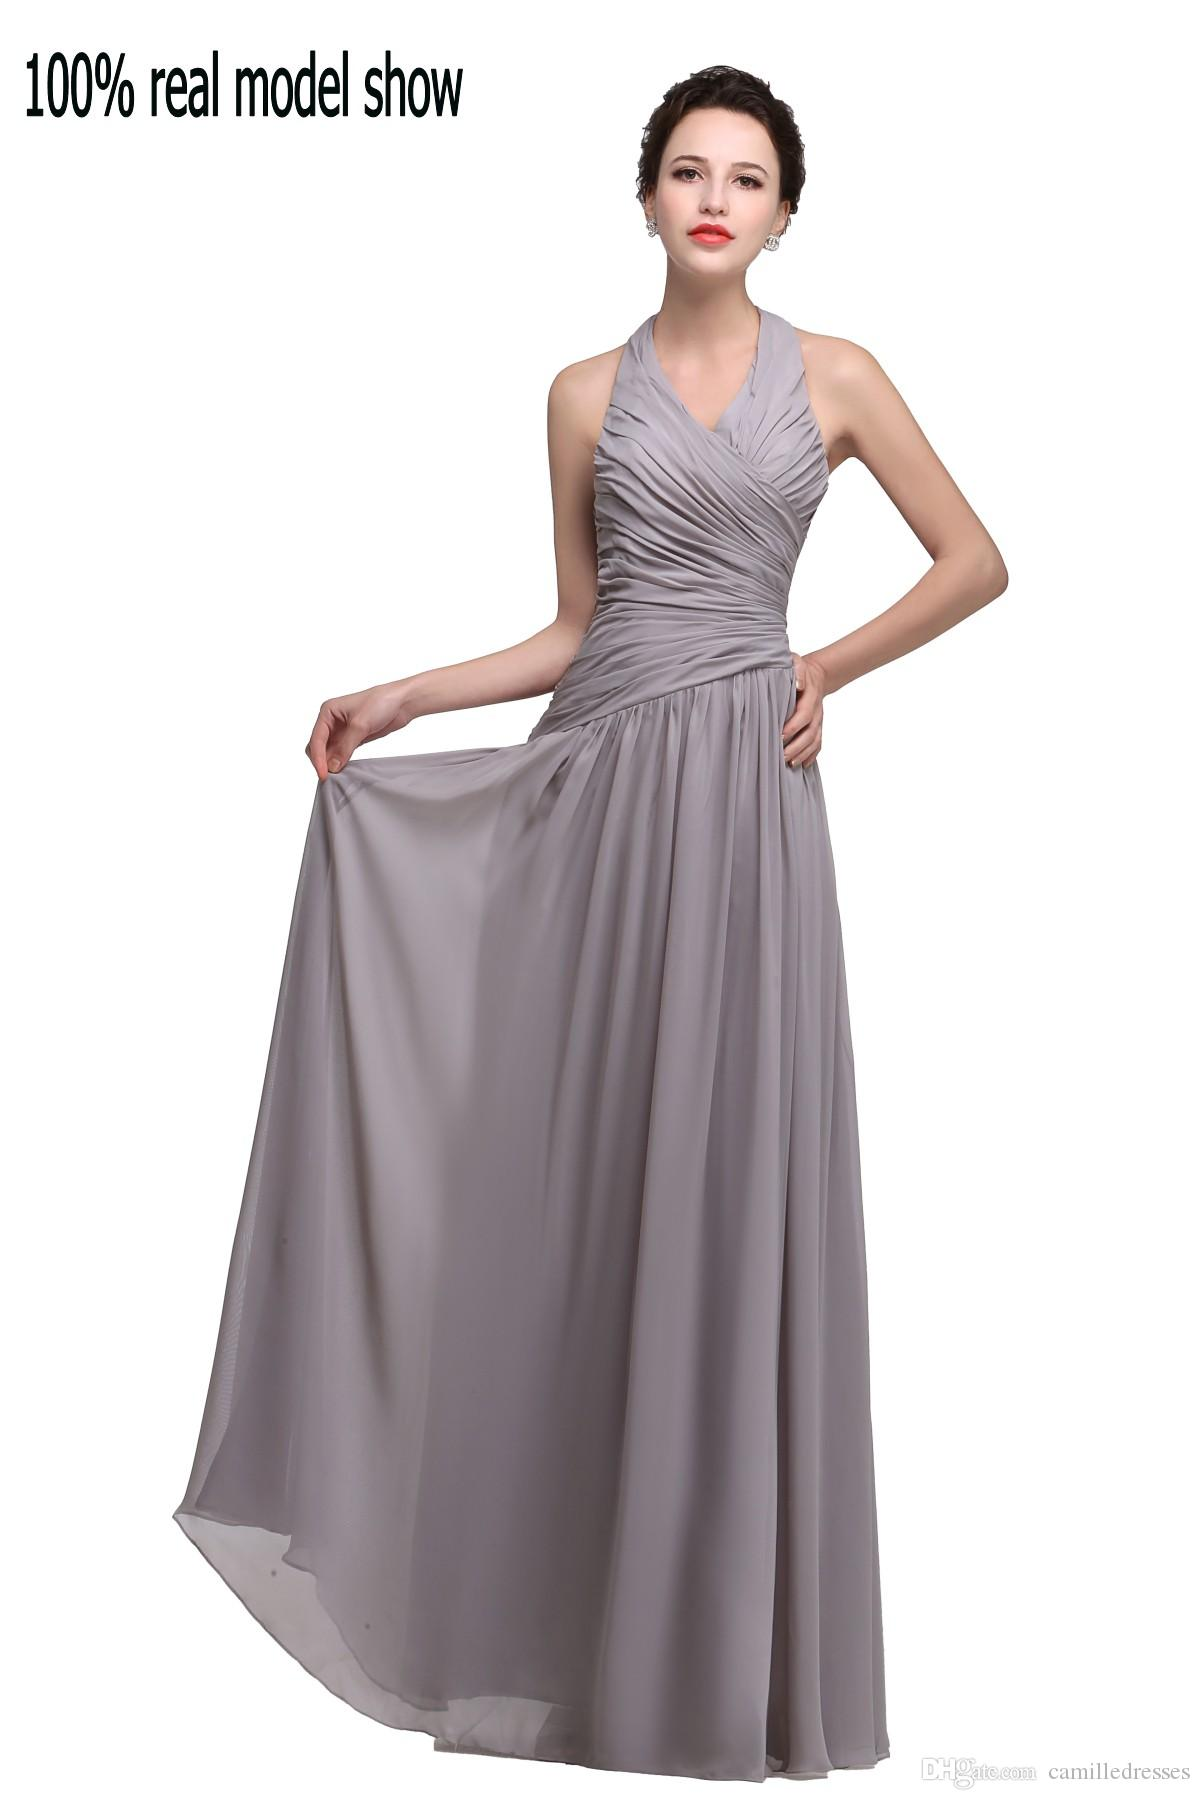 designer plus size evening gowns - Nuruf.comunicaasl.com